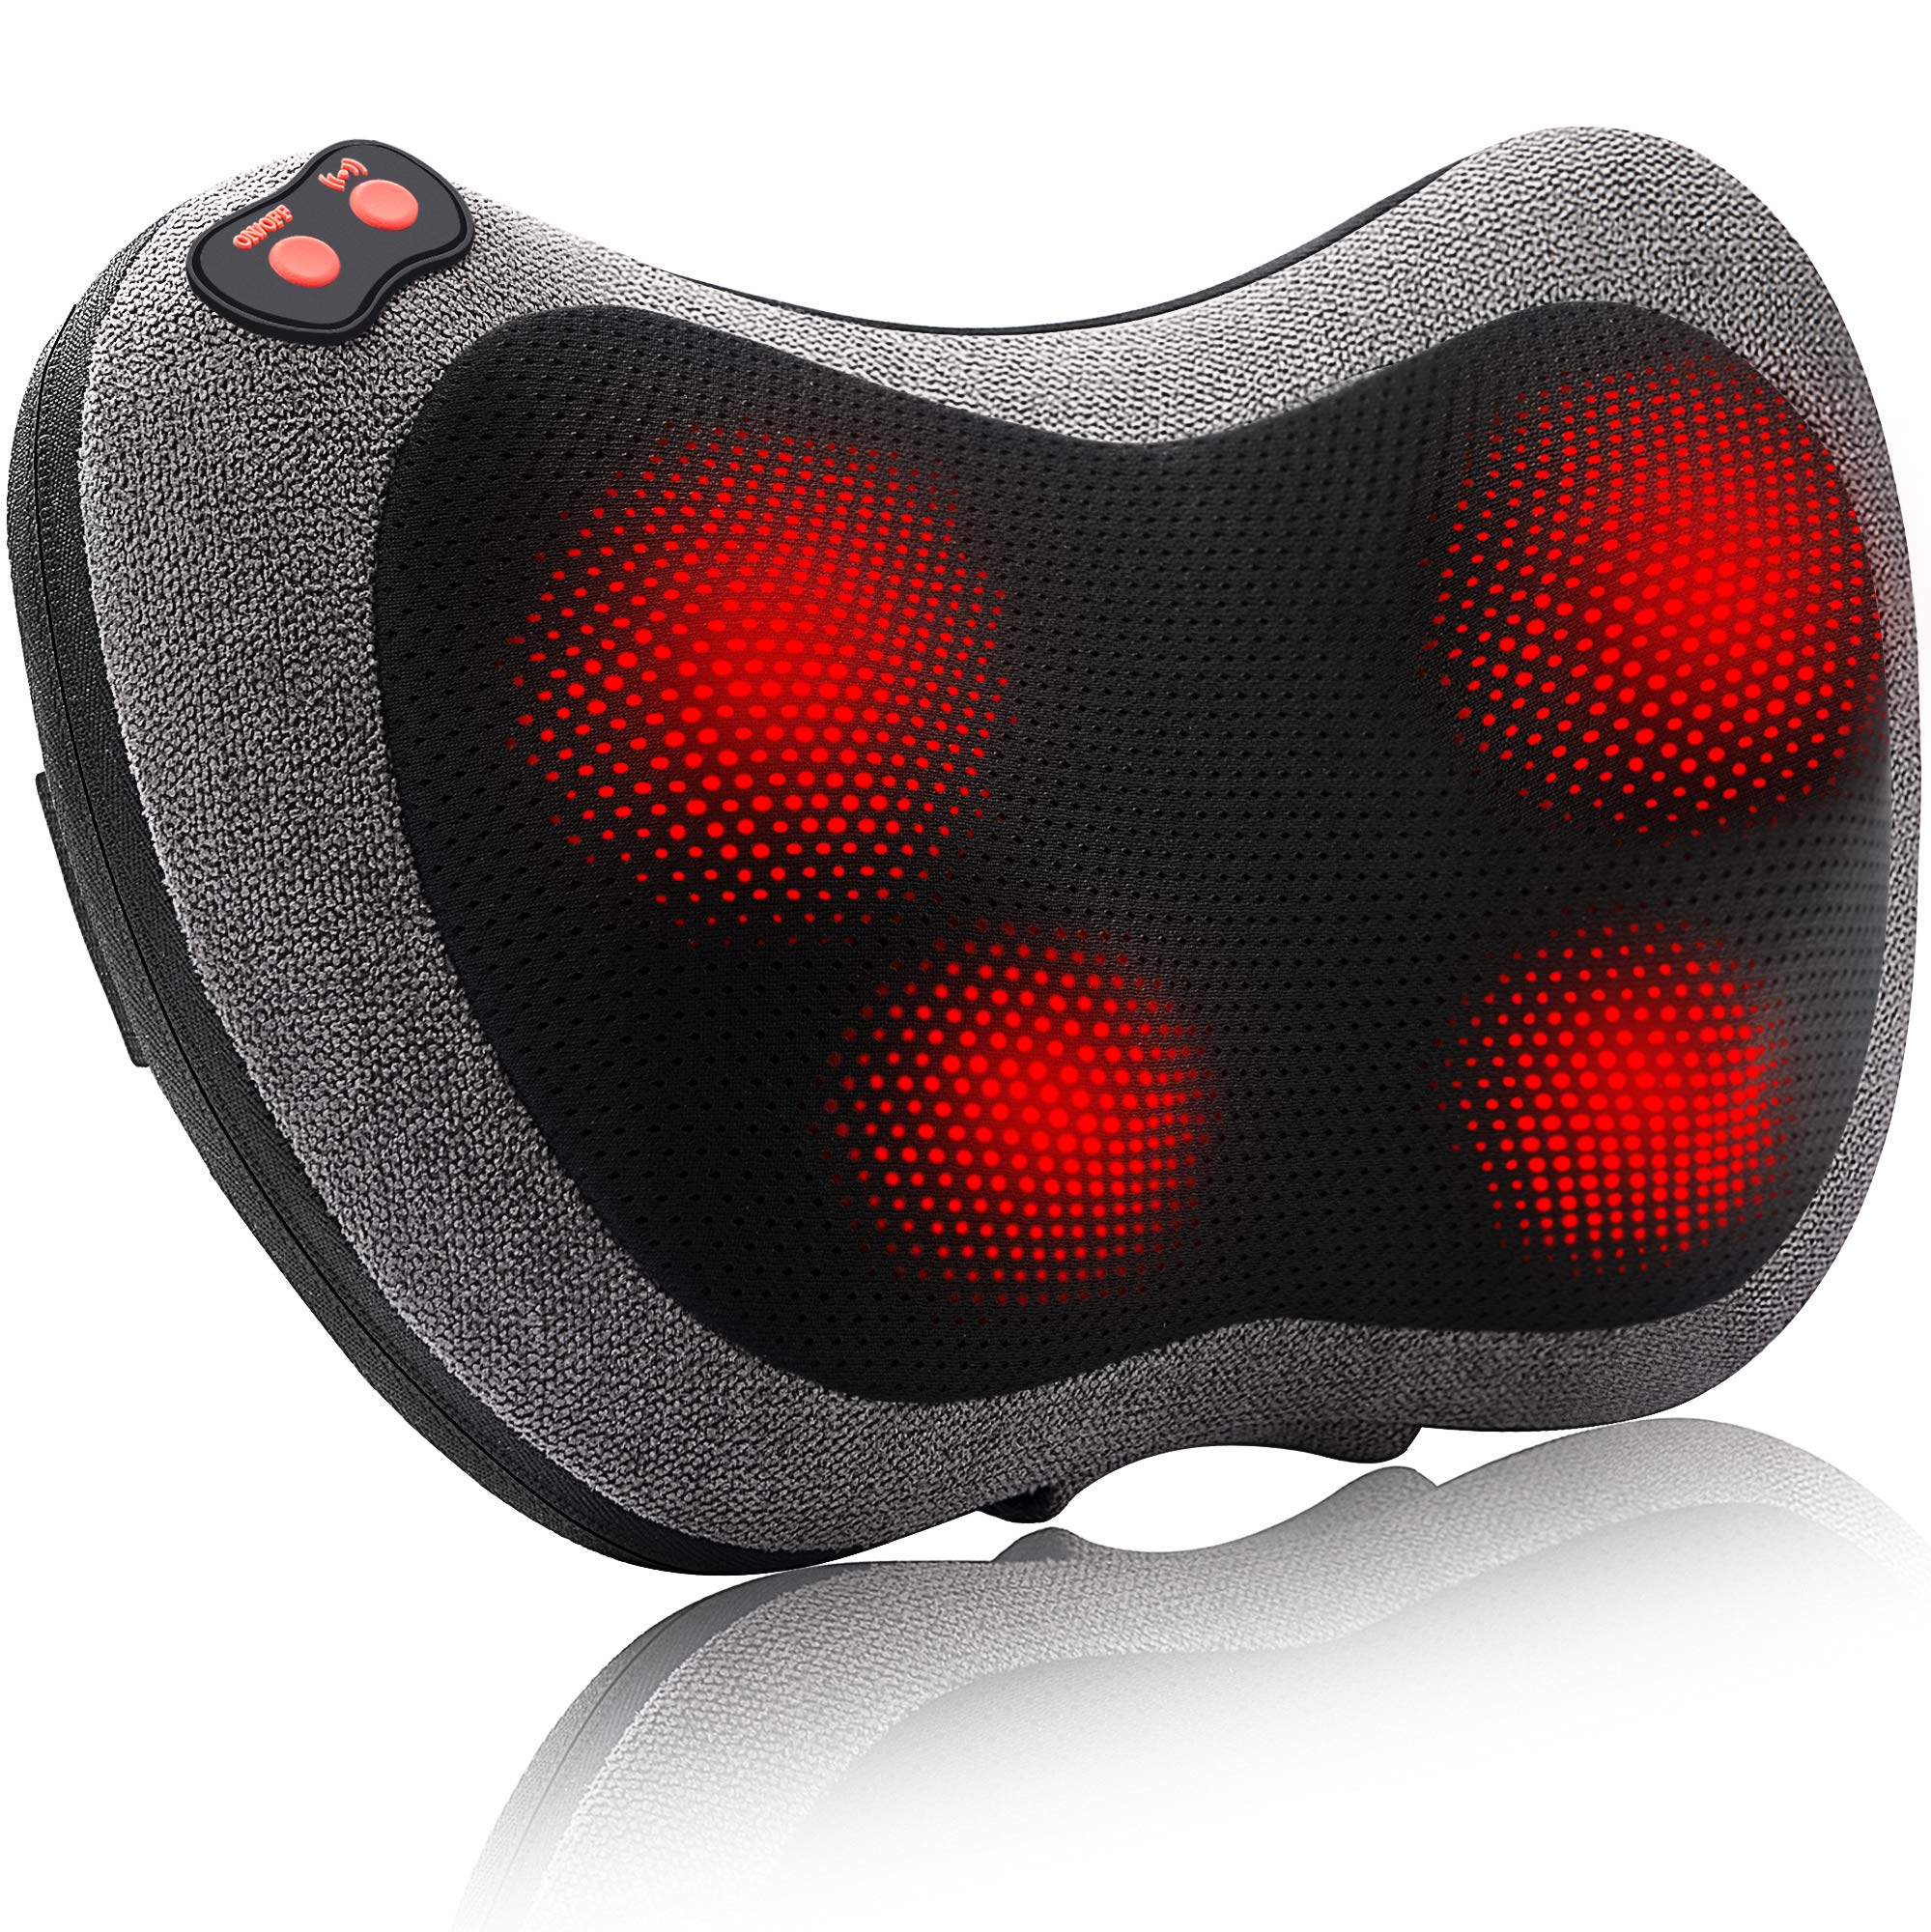 Papillon Back Massager with Heat,Shiatsu Back and Neck Massager with Deep Tissue Kneading,Electric Back Massage Pillow for Back,Neck,Shoulders,Legs, Foot,Body Muscle Pain Relief,Use at Home,Car,Office by Papillon